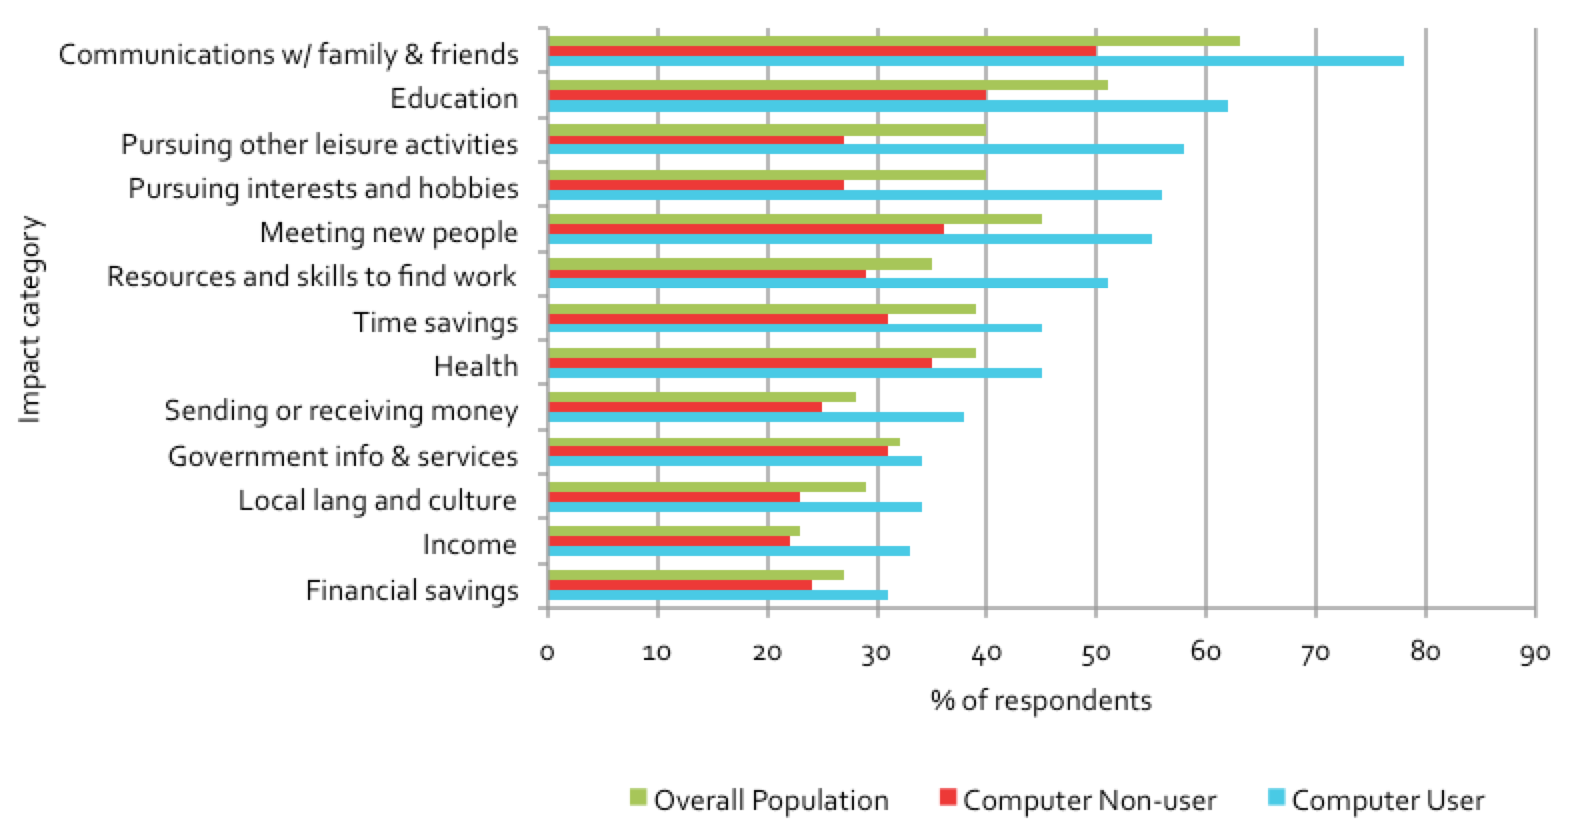 Figure 6.7: Impacts of public access venues on non-users, grouped by computer use